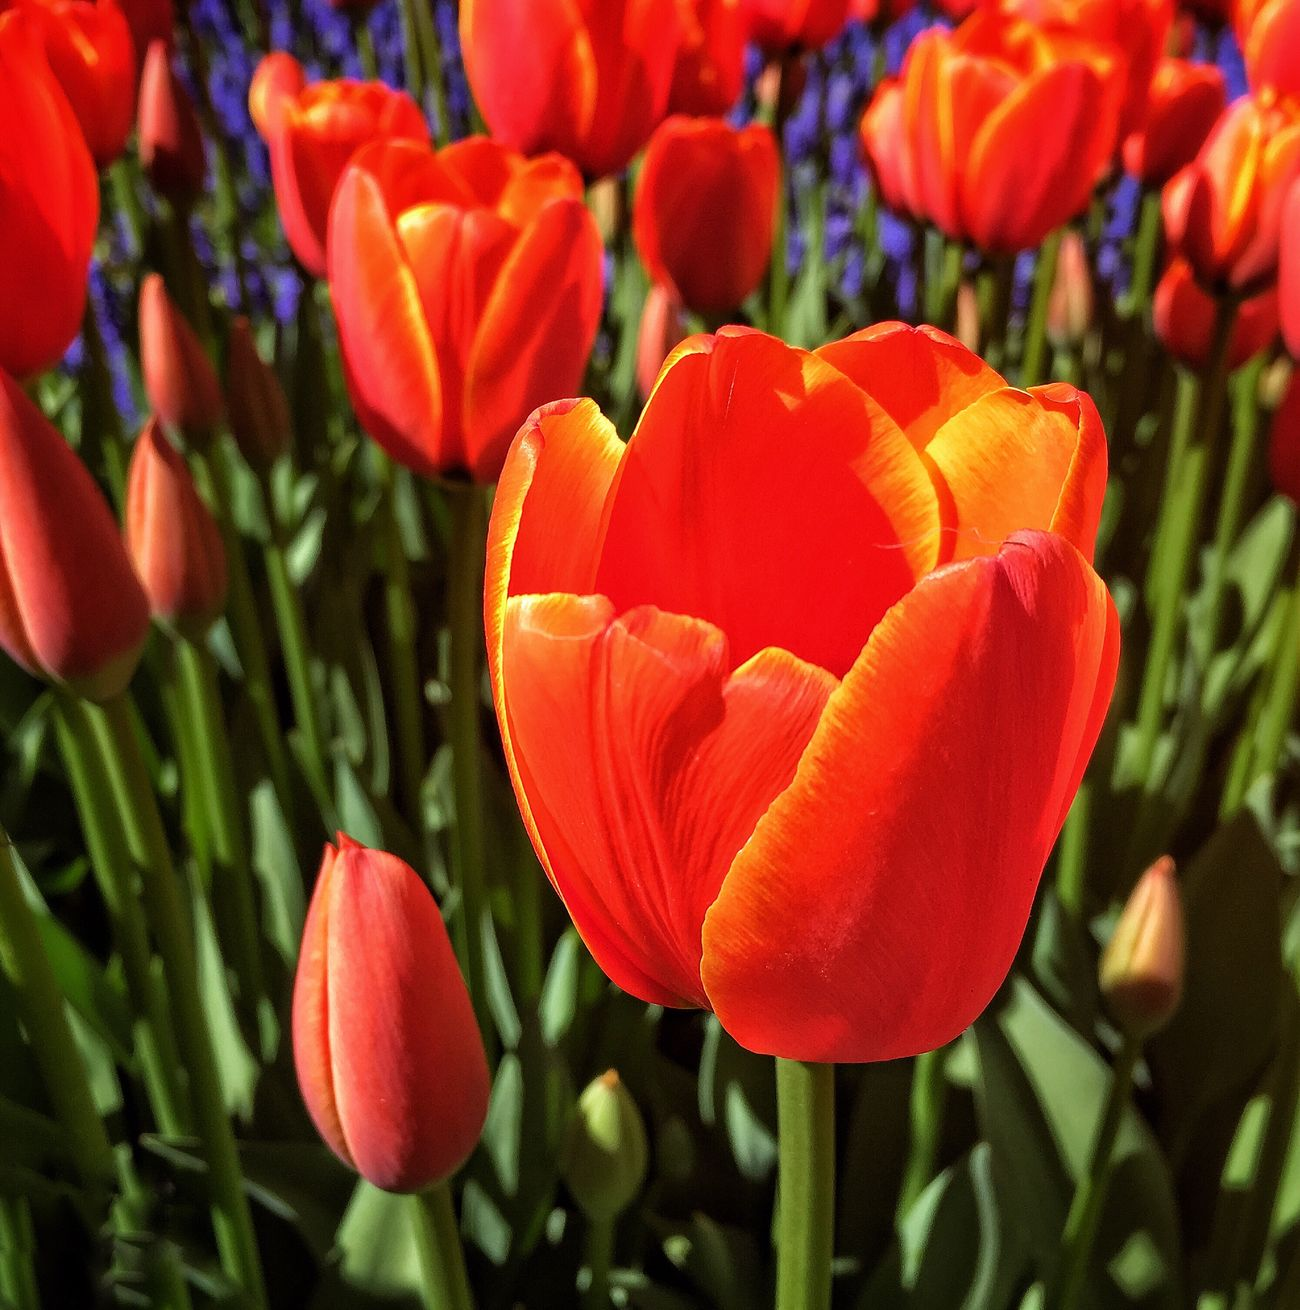 Fresh Tulips Freshness Flower Nature Fragility Beauty In Nature Petal Growth Blooming Flower Head Orange Color Red Plant No People Outdoors Tulip Close-up Day